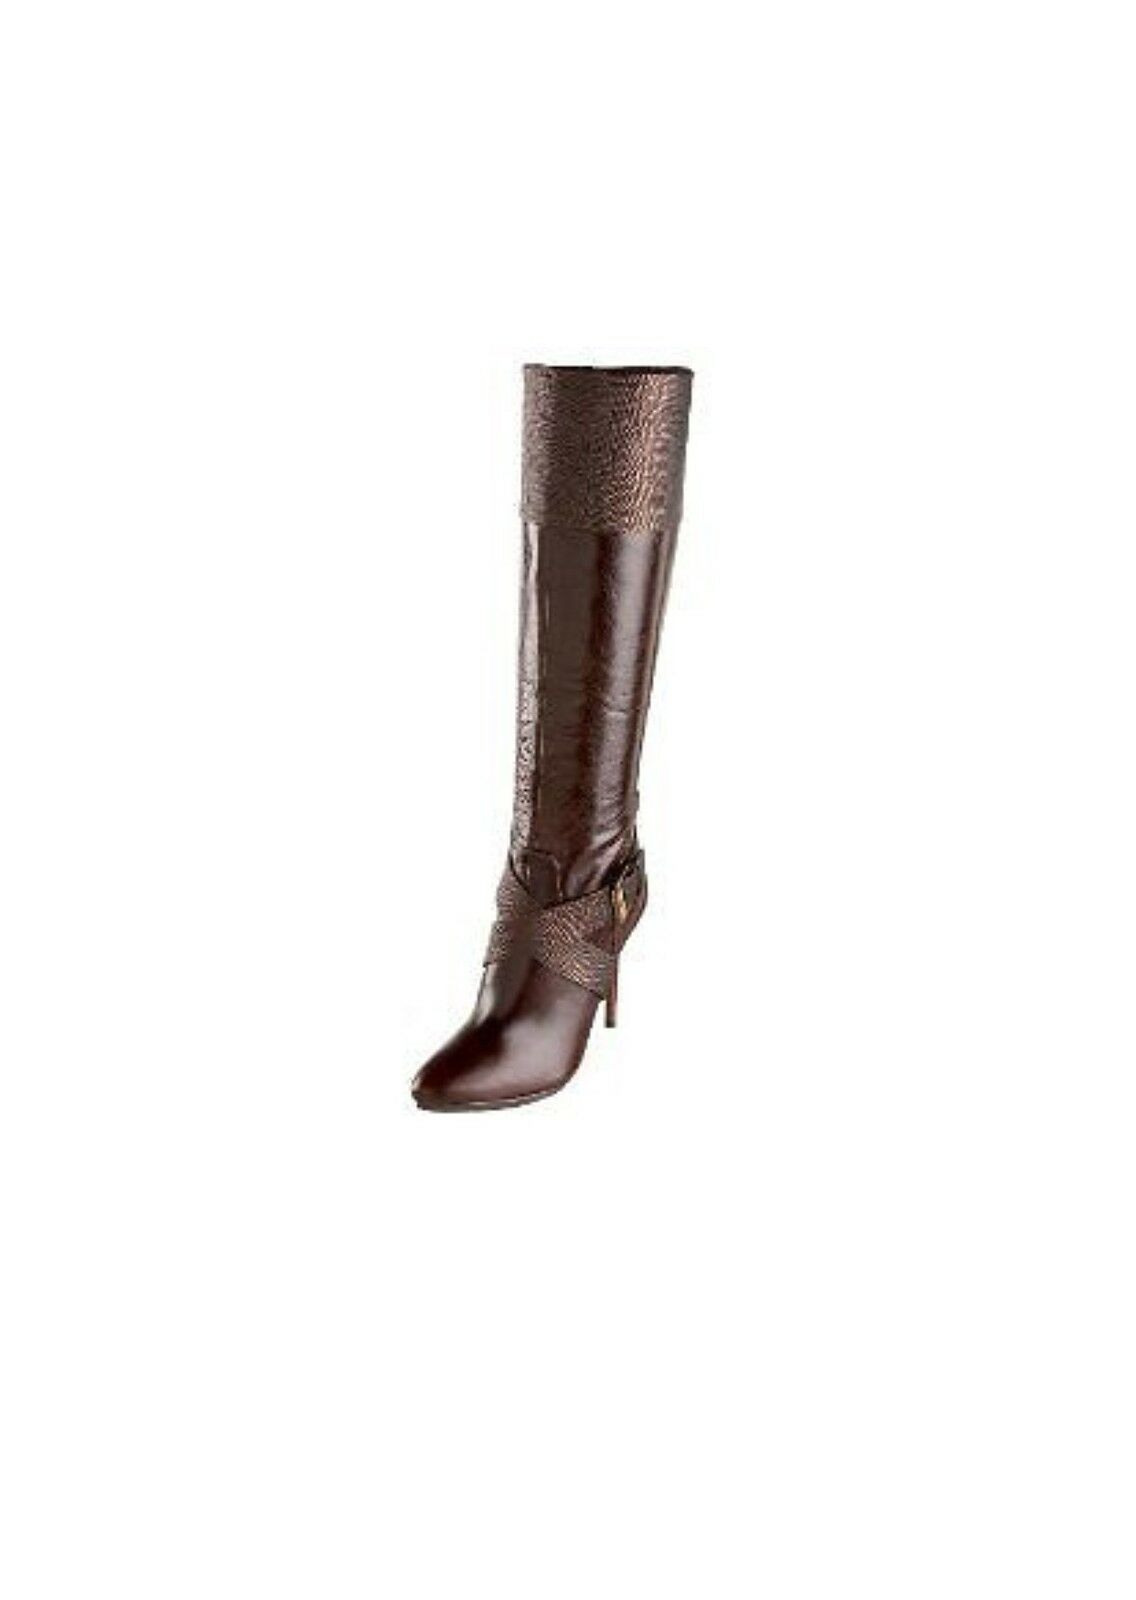 $368 MARCIANO GUESS CARELLE RUNWAY BOOT DRESS SHOES BROWN SIZE 6 9